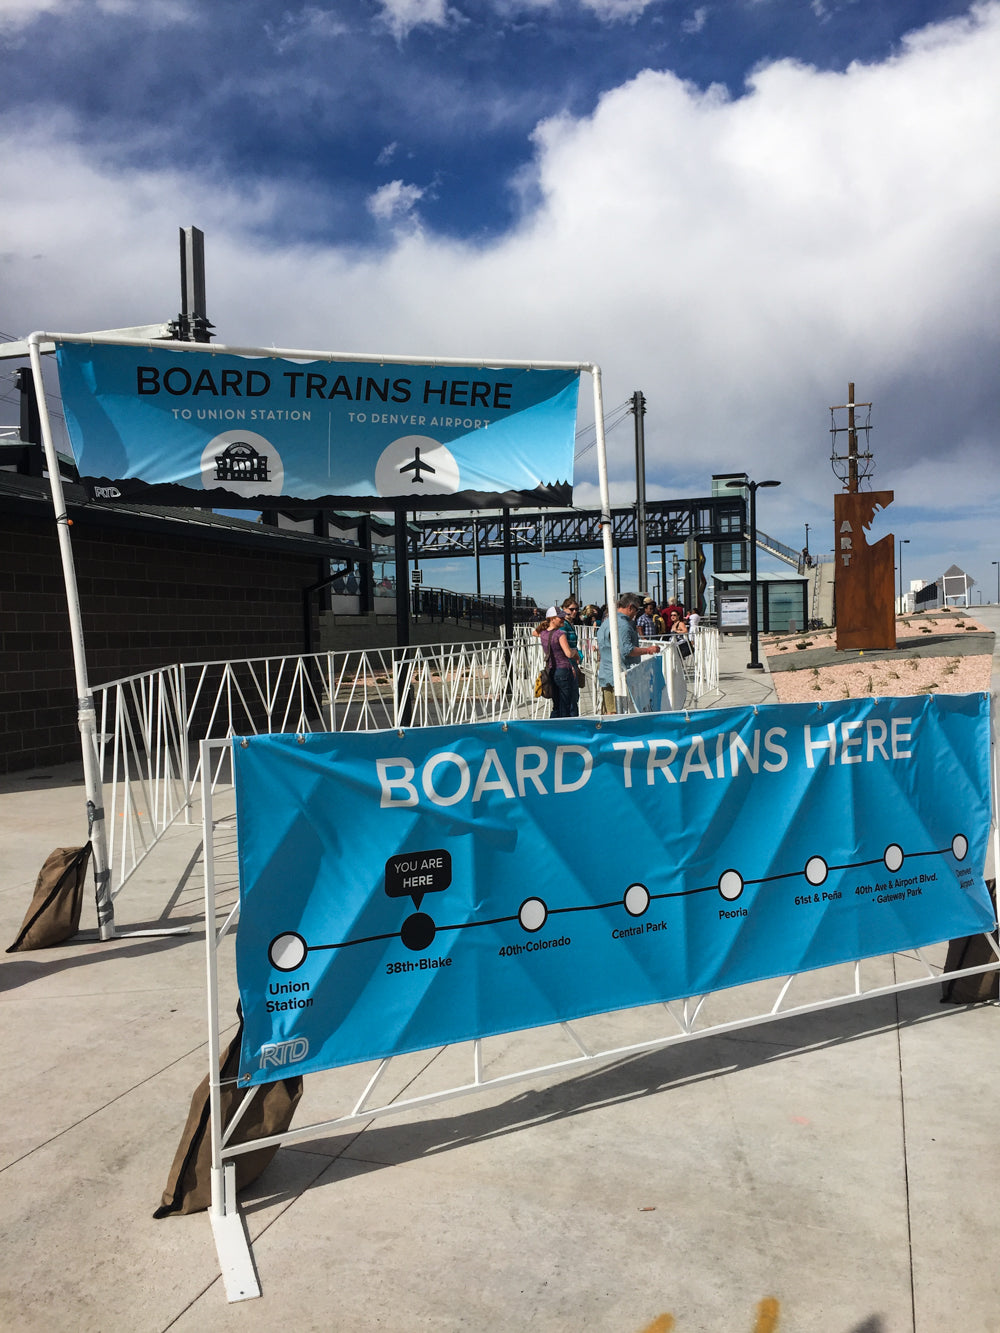 A-Line to DIA (Denver International Aeroport) is Open Today | 38th & Blake Station | Denver Spring Flea